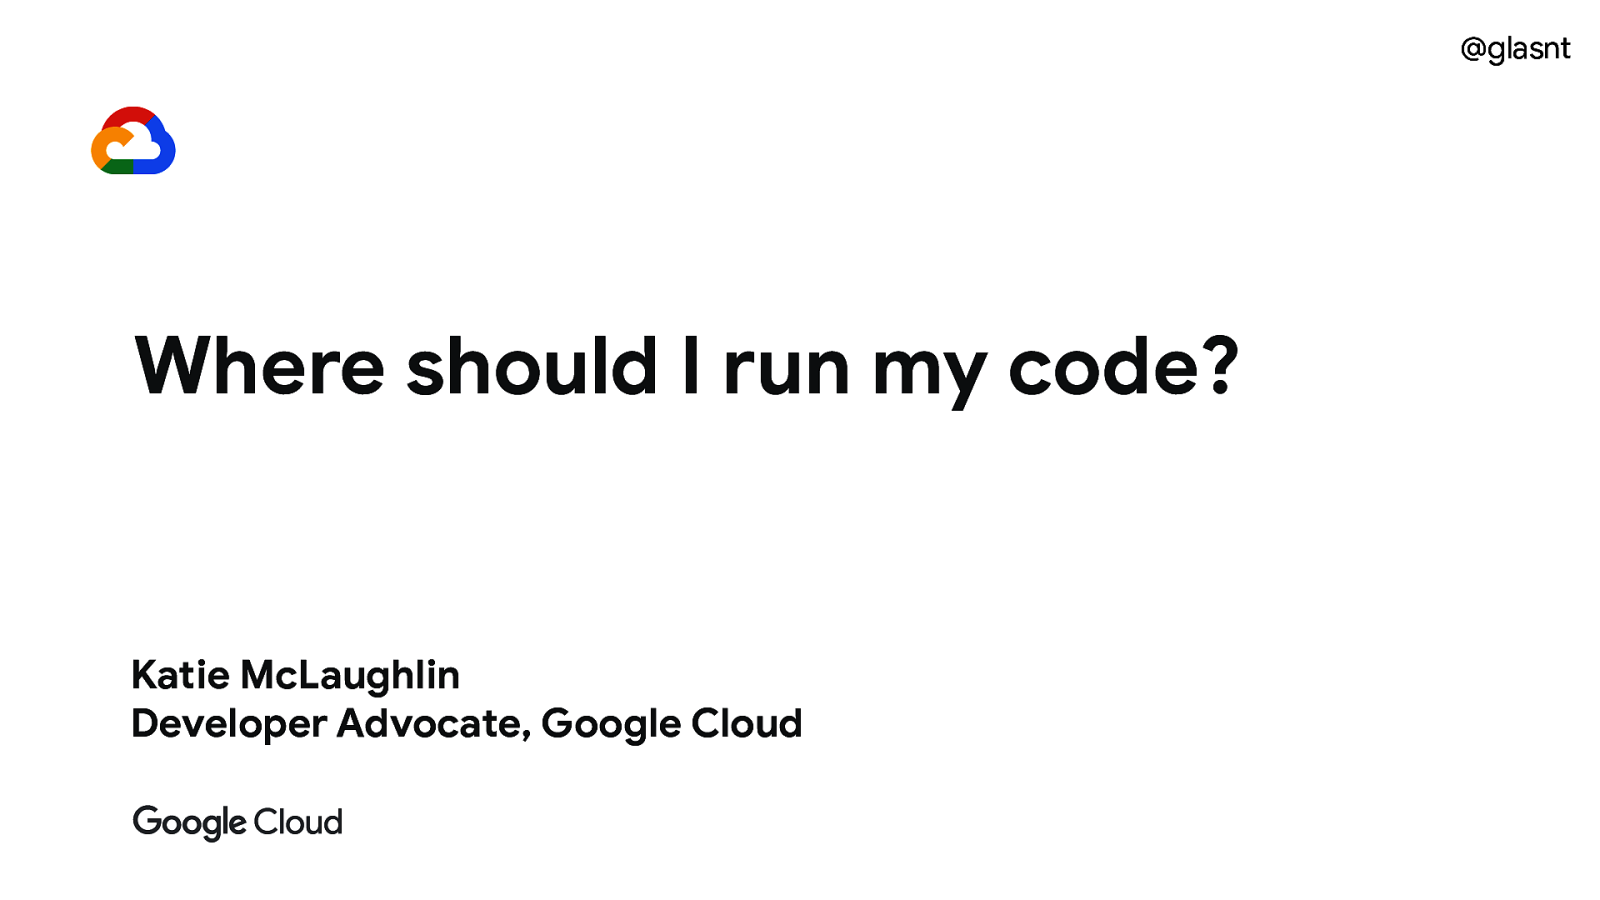 Where should I run my code? by Katie McLaughlin